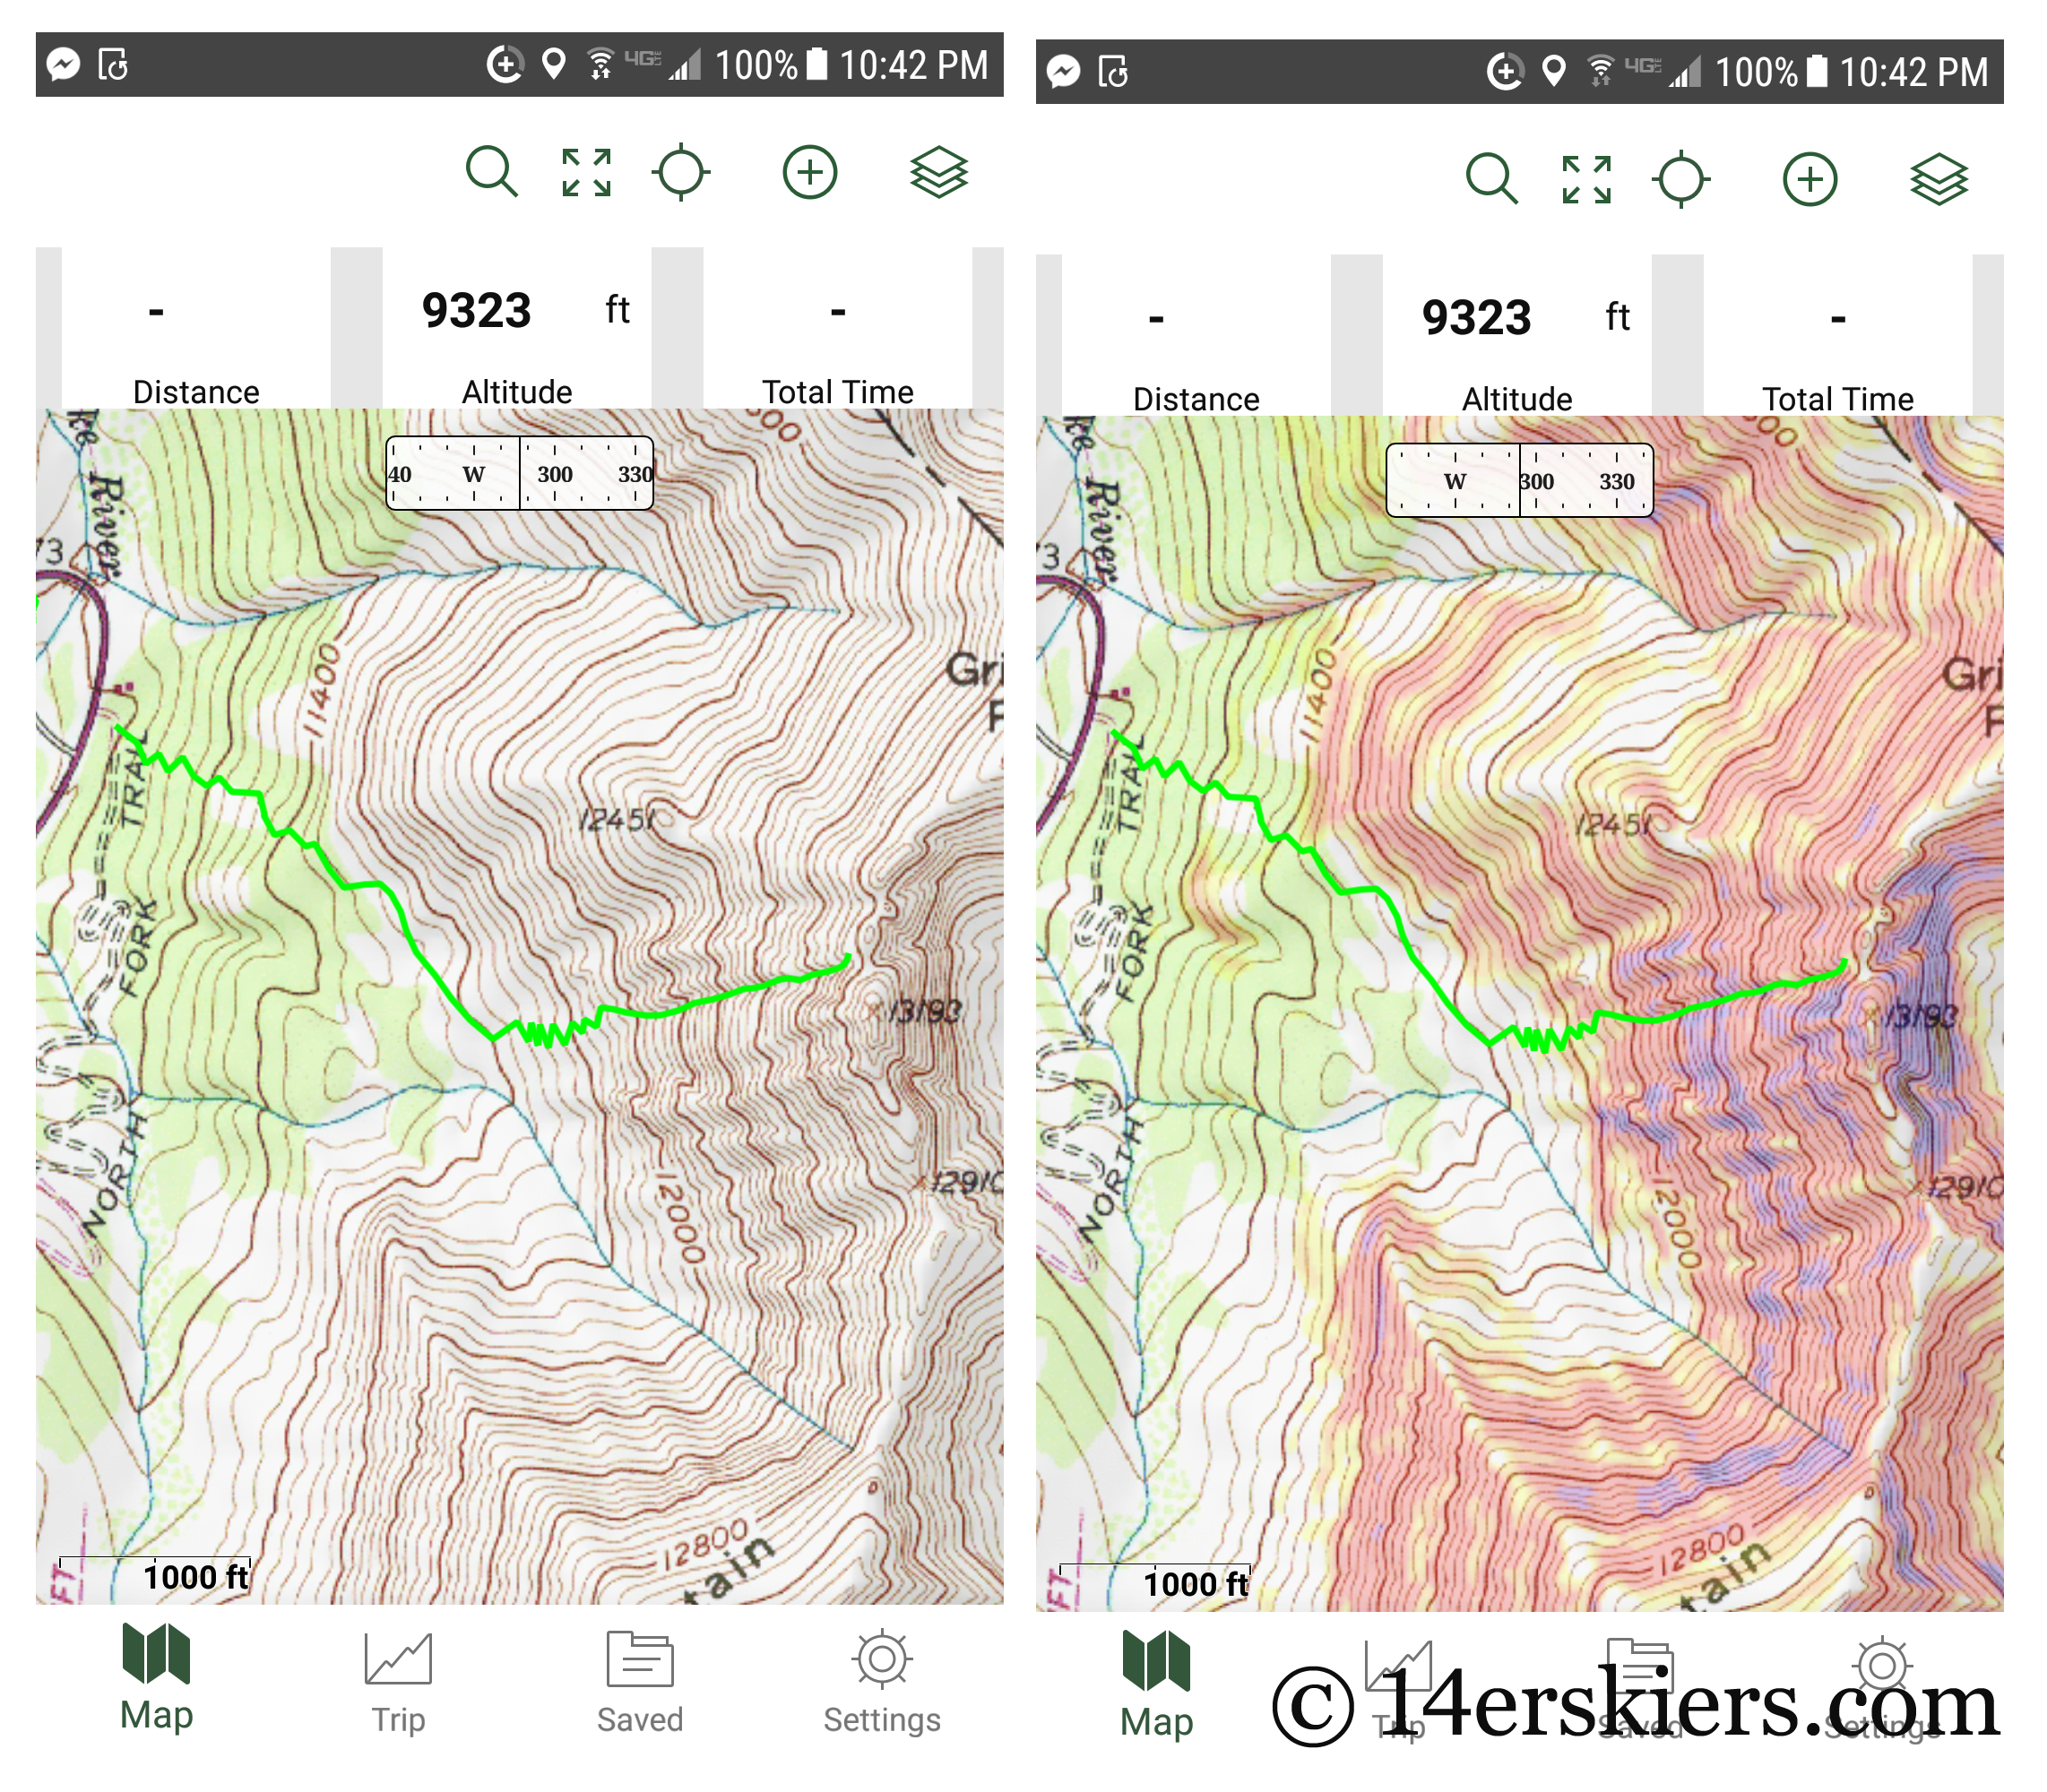 How to use CalTopo & the Gaia GPS App to Plan your Backcountry Skiing Routes - Updated